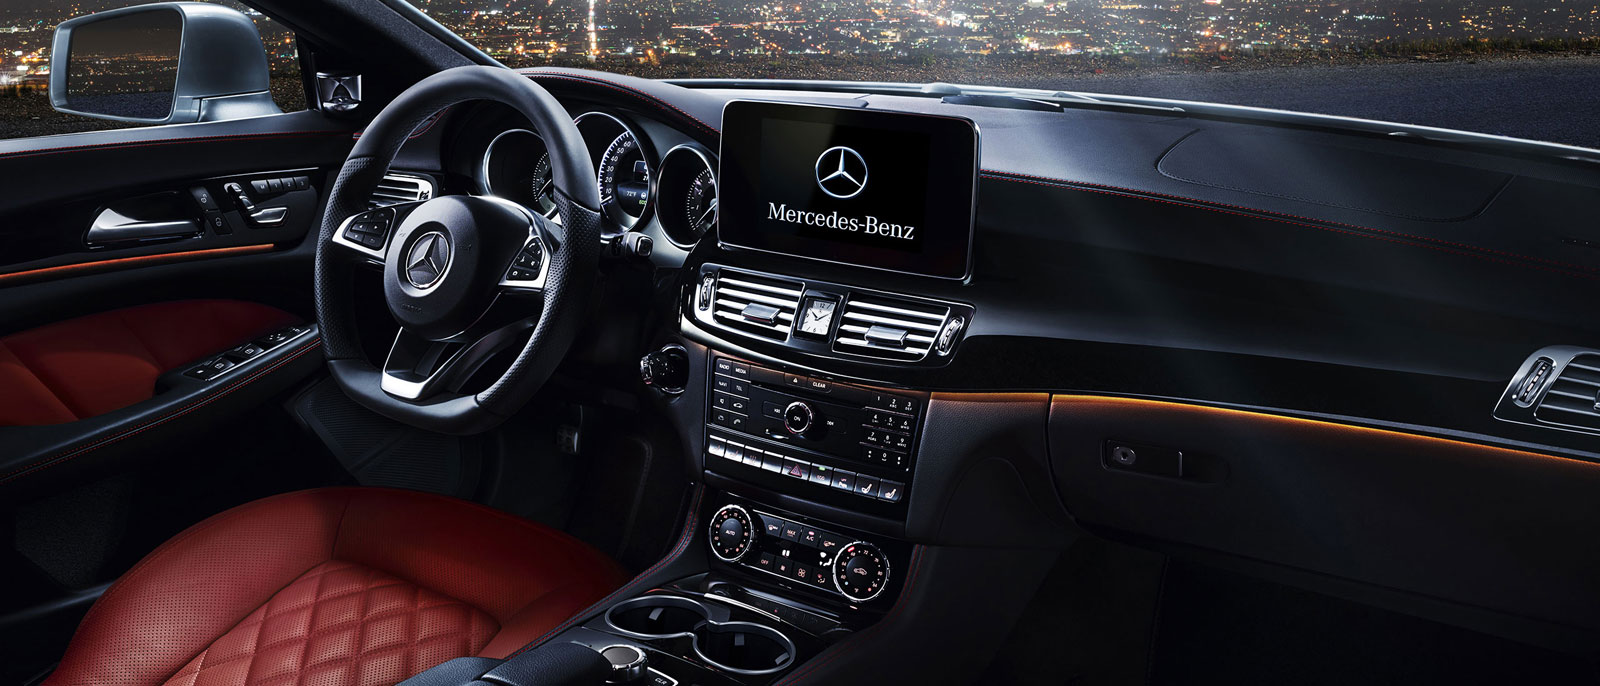 2015 Mercedes-Benz CLS Coupe